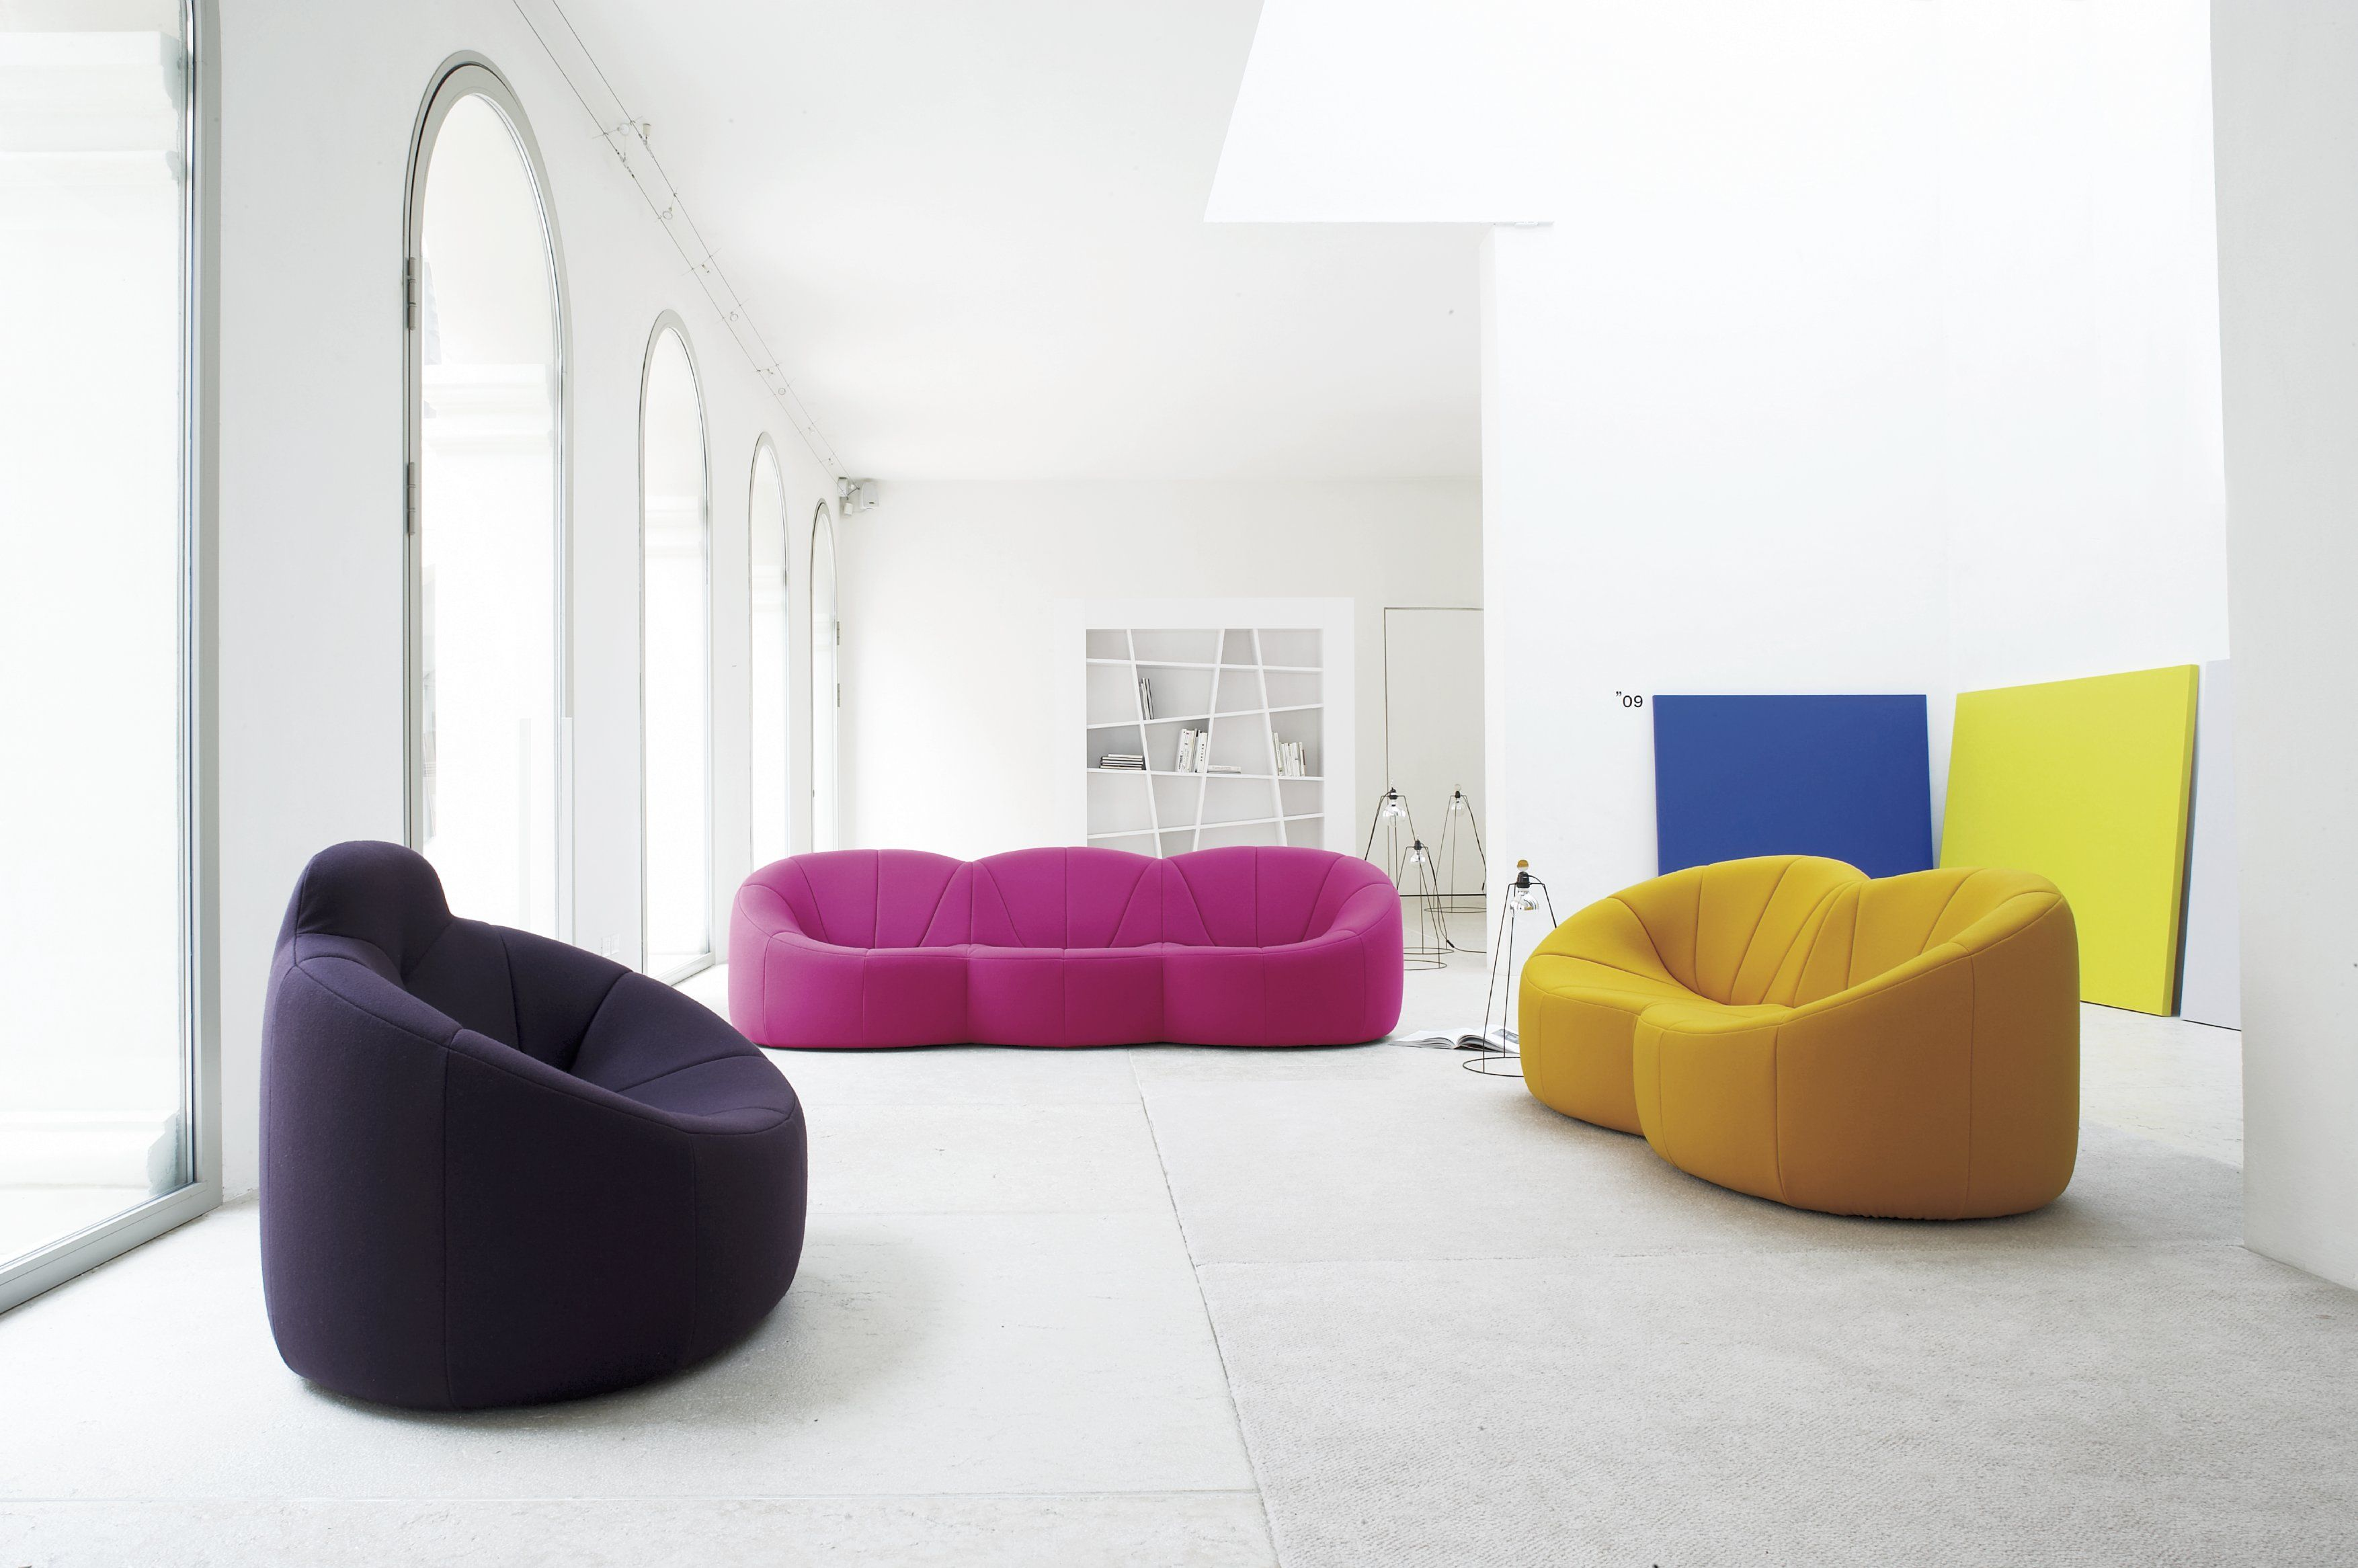 Pumpkin Armchair Loveseat And Sofa In Colors That Bold Colors That Contrast And Complement The 1960s Interior Design 1960s Interior Contemporary Living Room